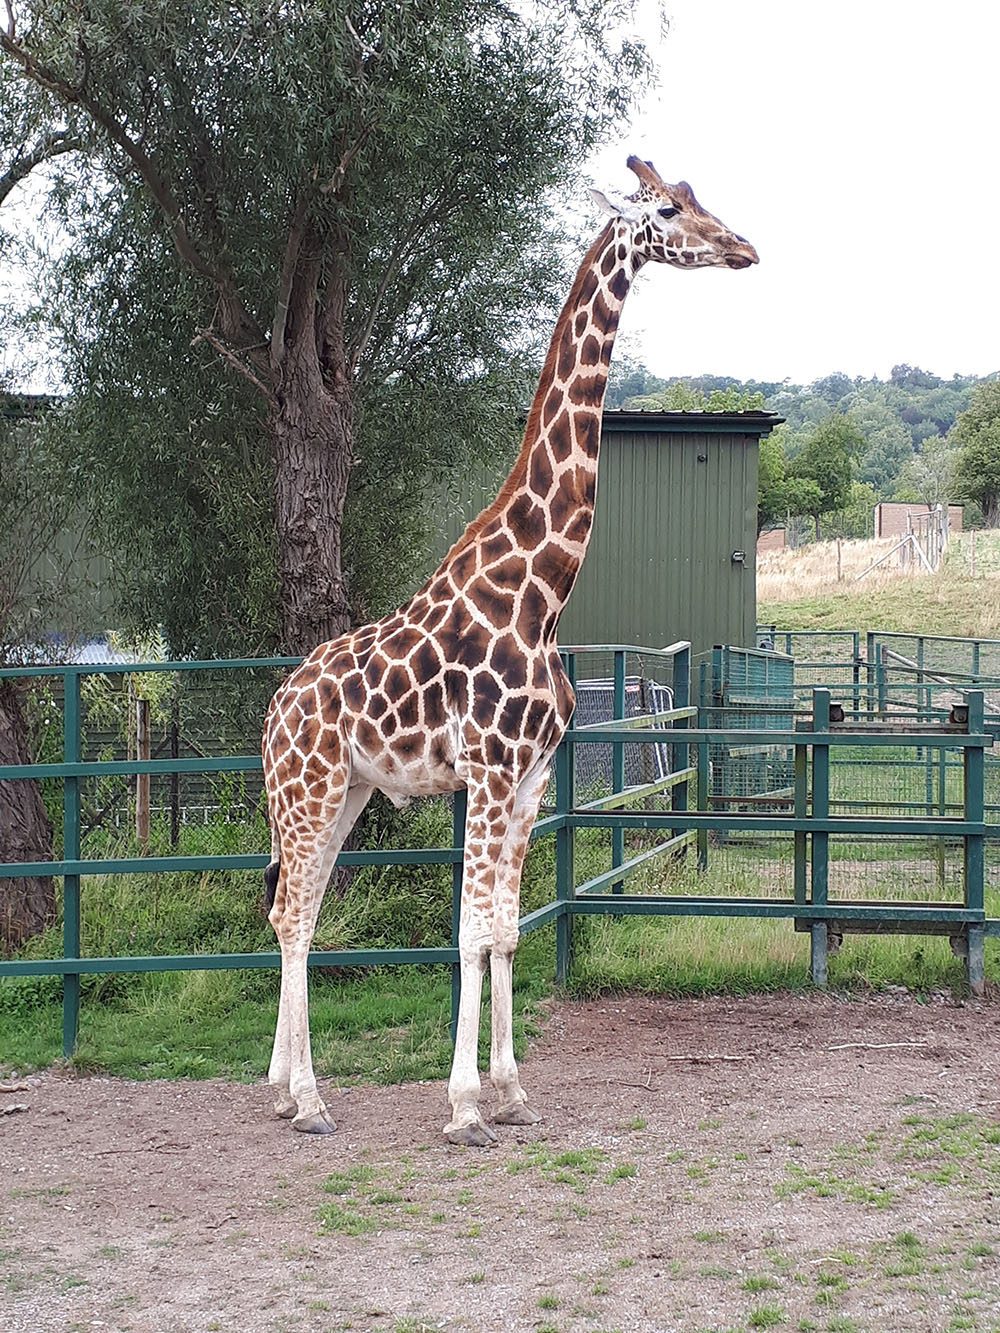 We visit the zoo and we saw some girafes